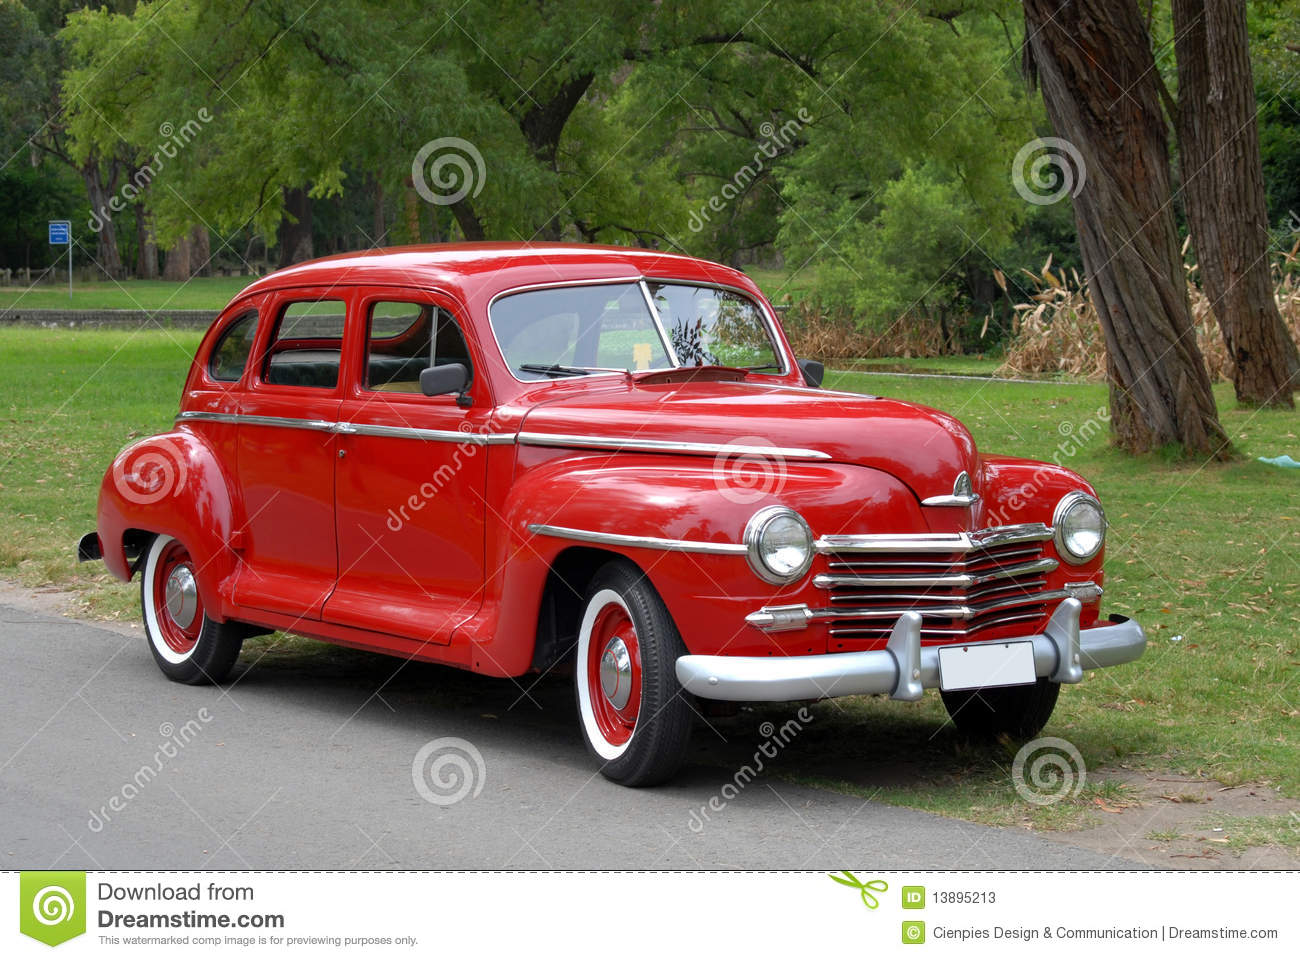 Red old fashioned car stock image. Image of classic, aged - 13895213